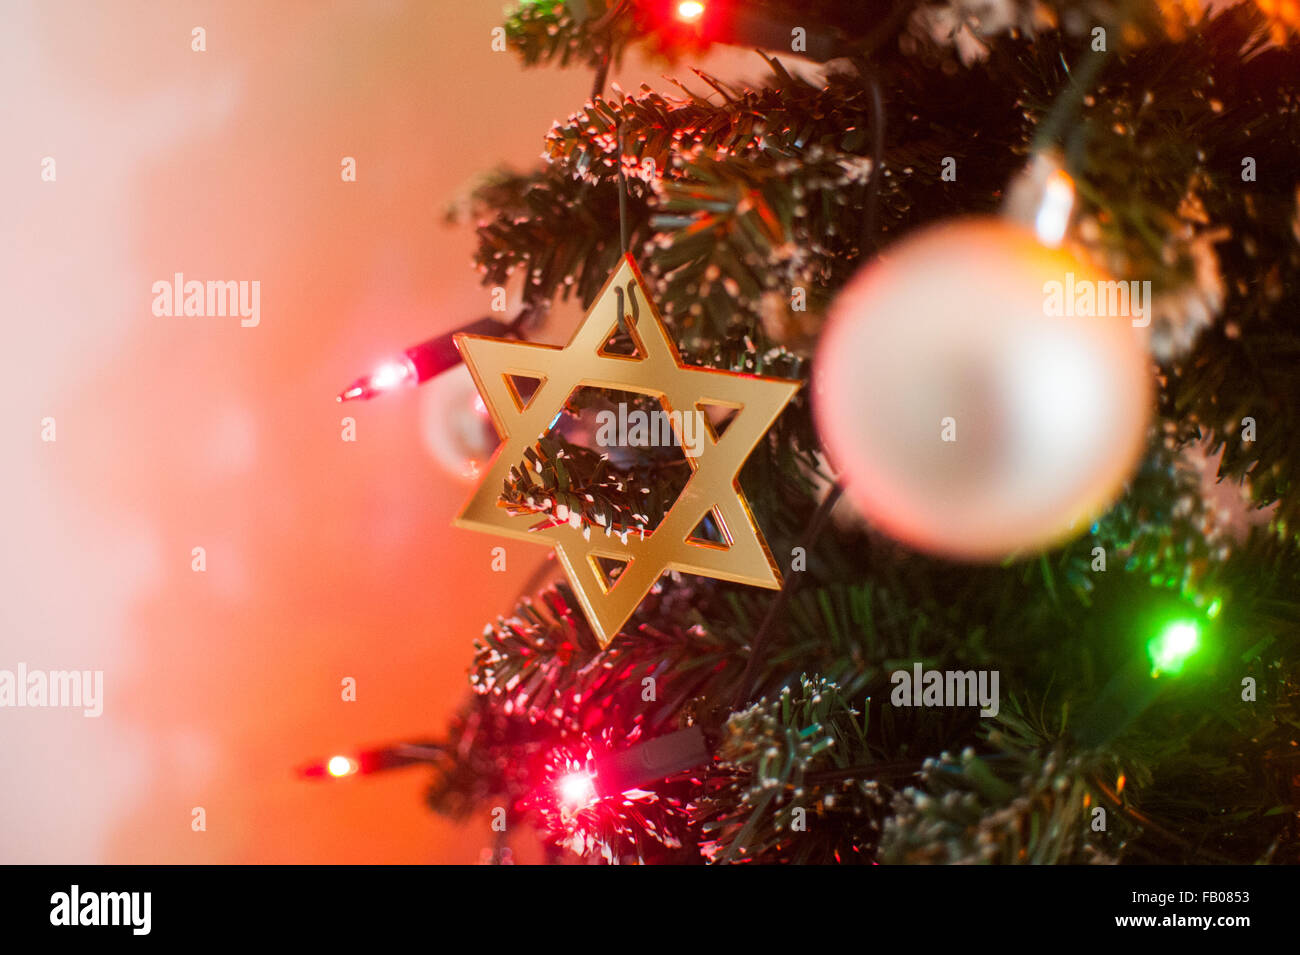 Jewish Star of David on Christmas tree Stock Photo: 92819471 - Alamy